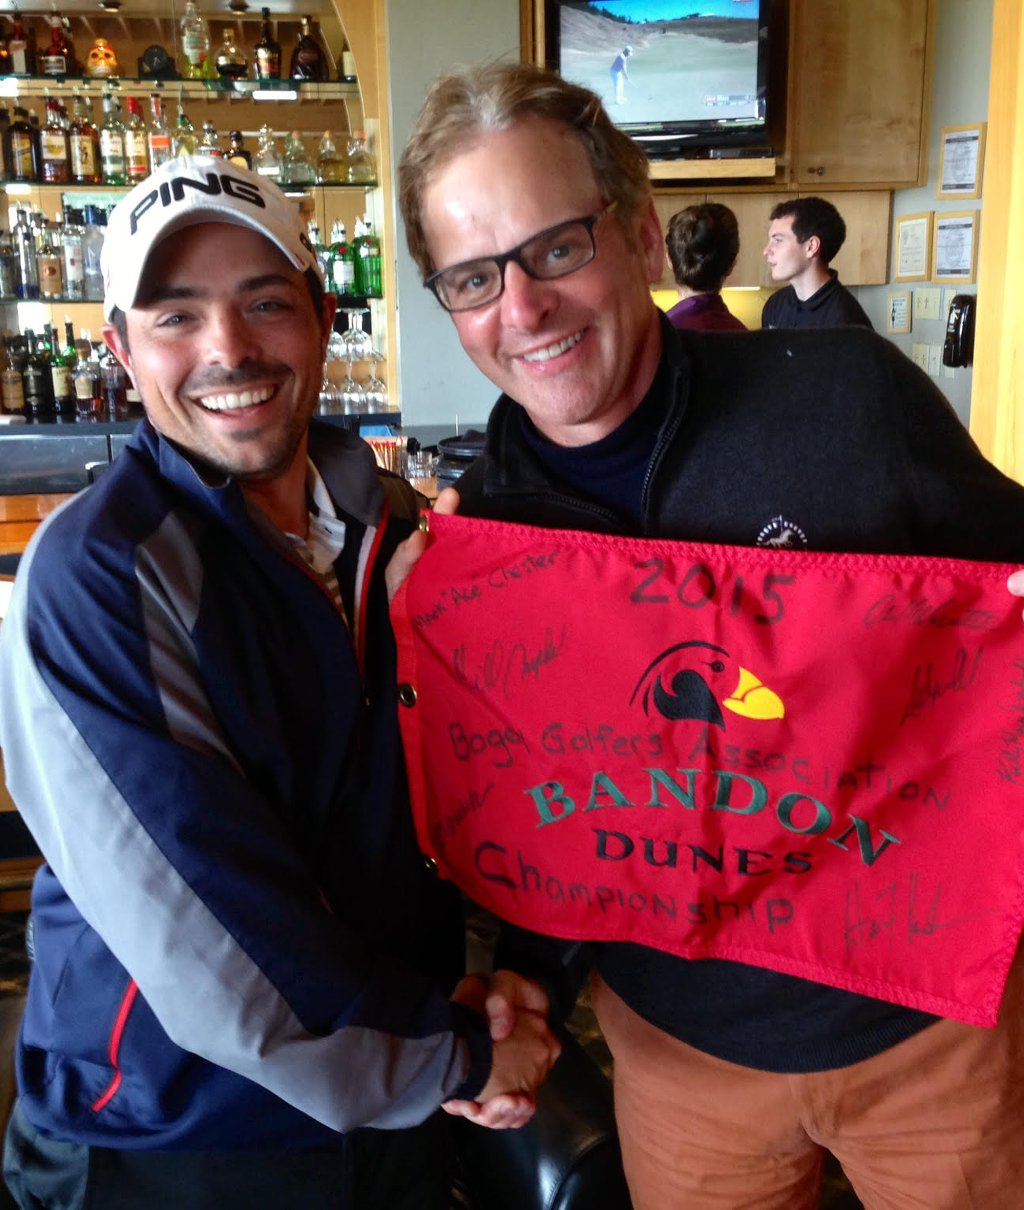 Alex Scarcella (left) presented with the Bandon Dunes flag by Don Drehoff